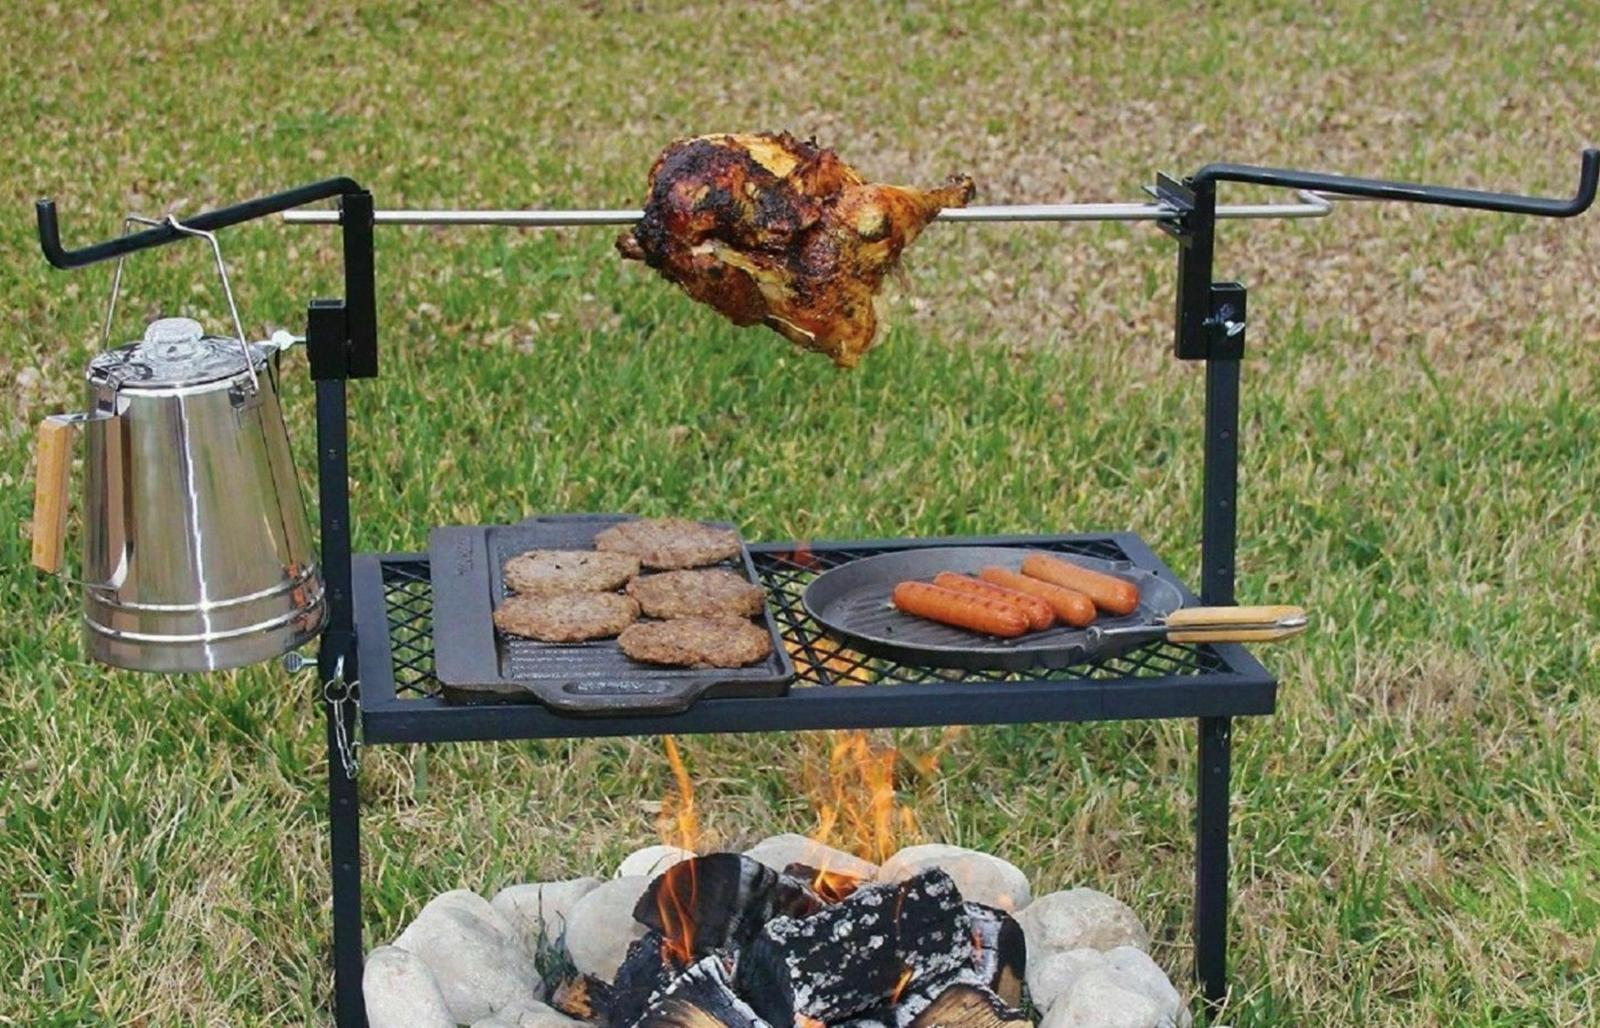 Rotisserie Grill Outdoor Campfire Cooking Camping Equipment